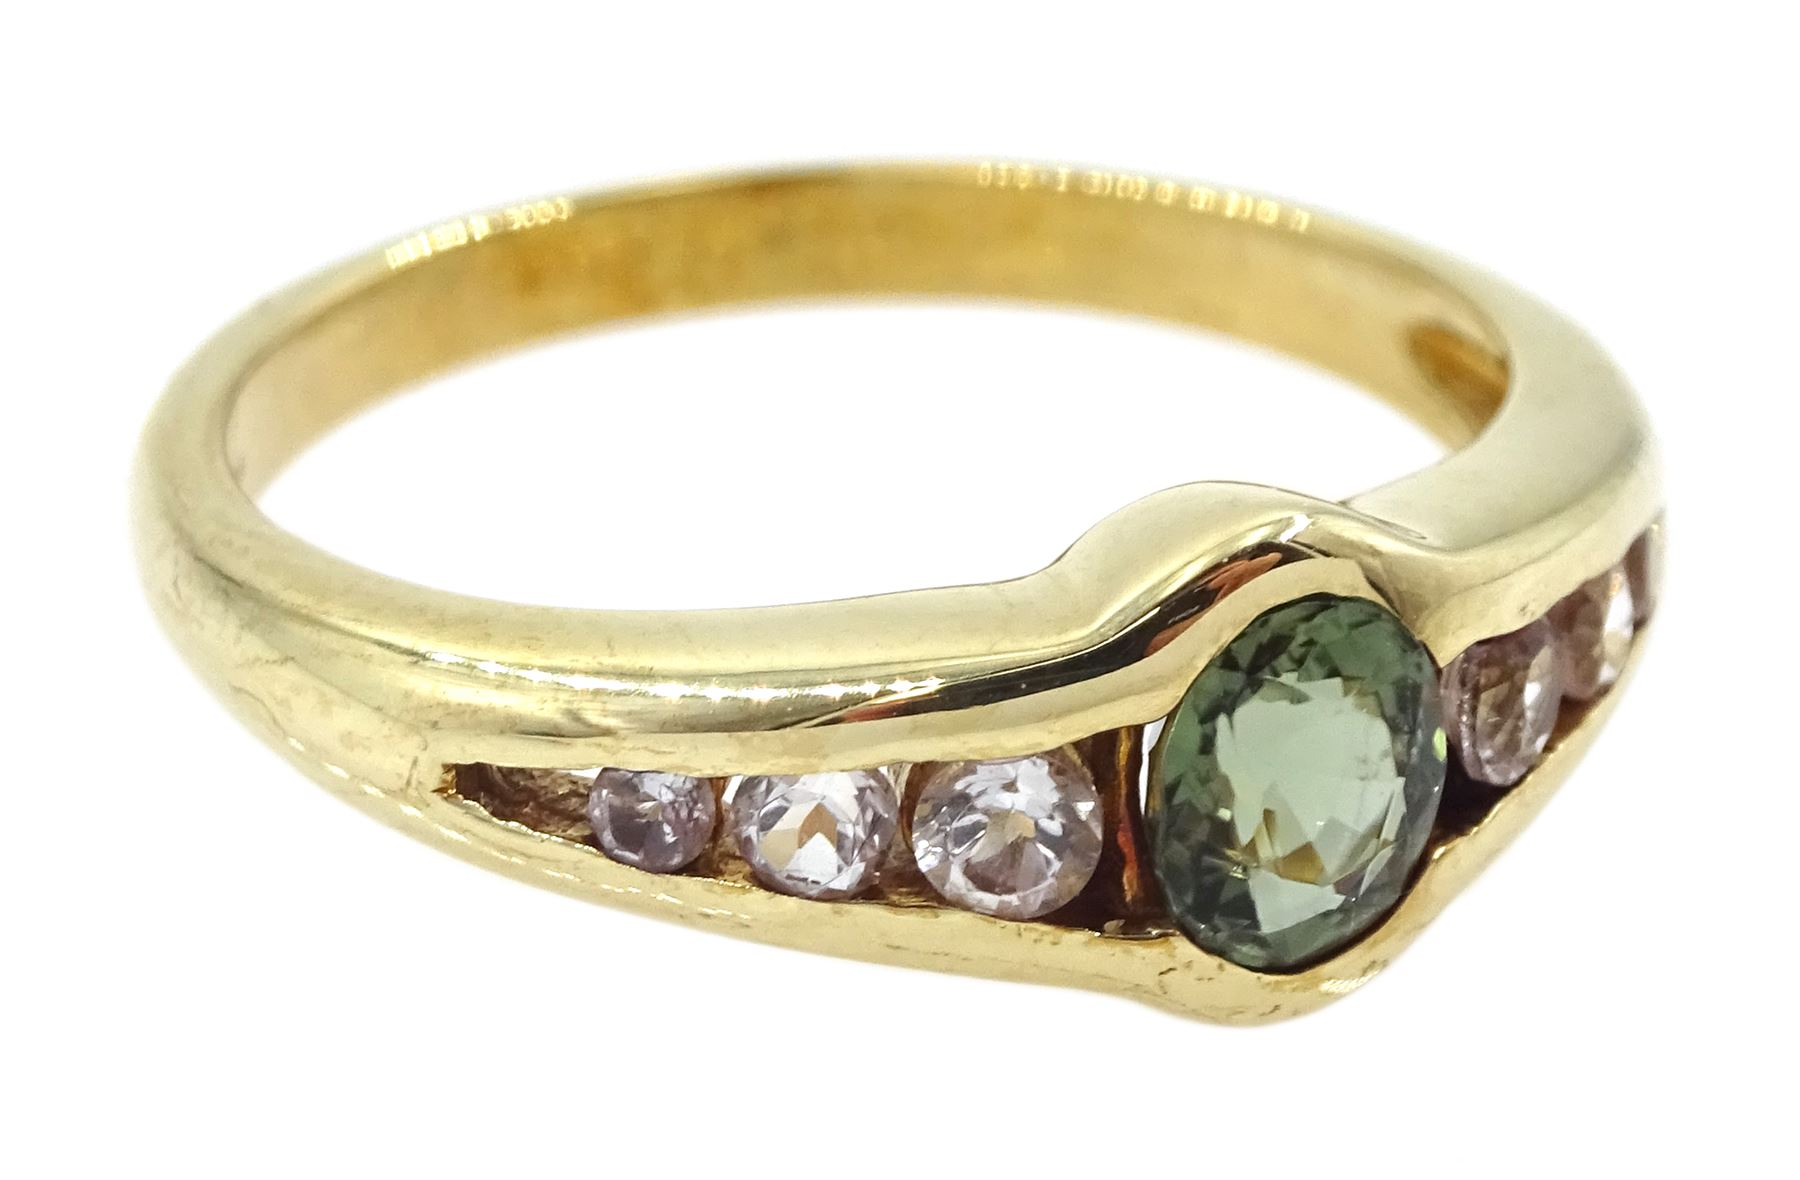 9ct gold oval green and white tourmaline ring - Image 3 of 4